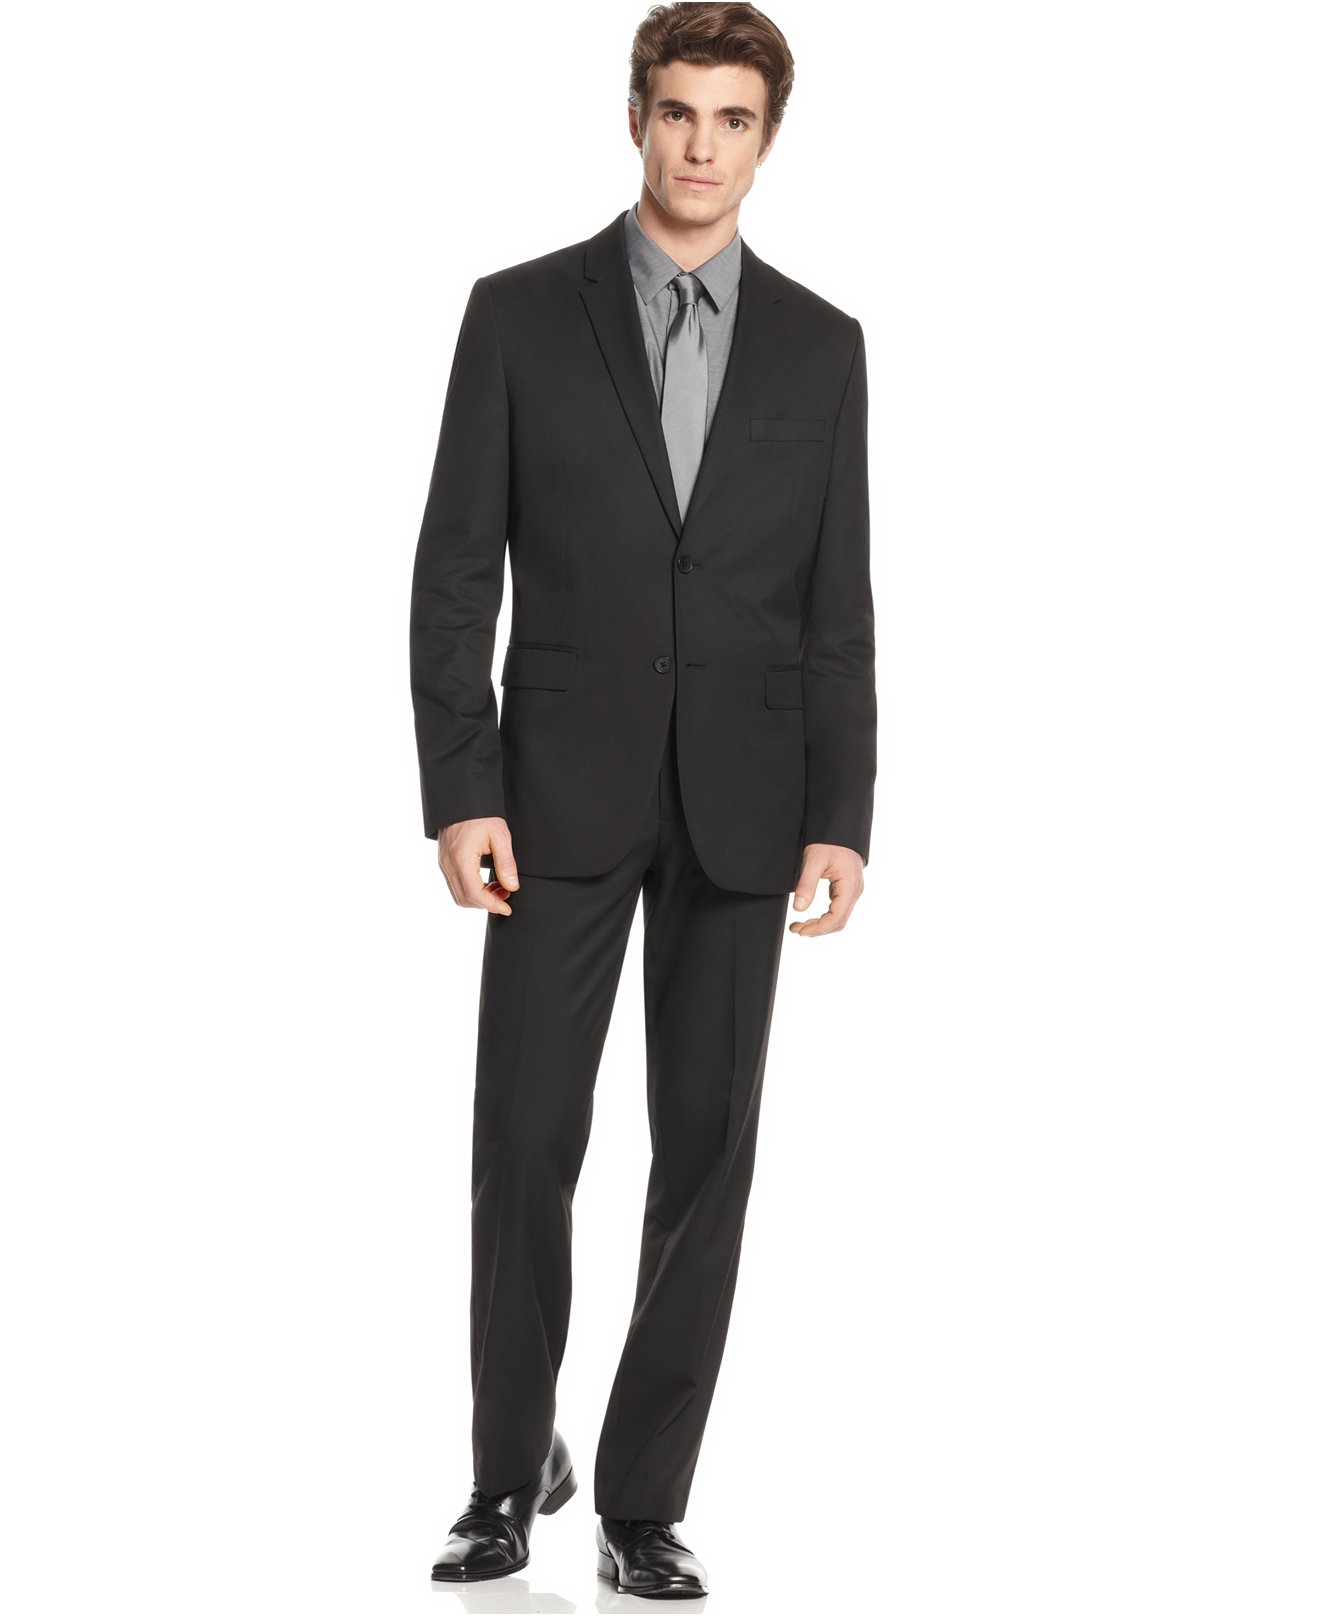 Calvin Klein Men's Suit, Slim Fit Two Piece Suit - Suits & Suit